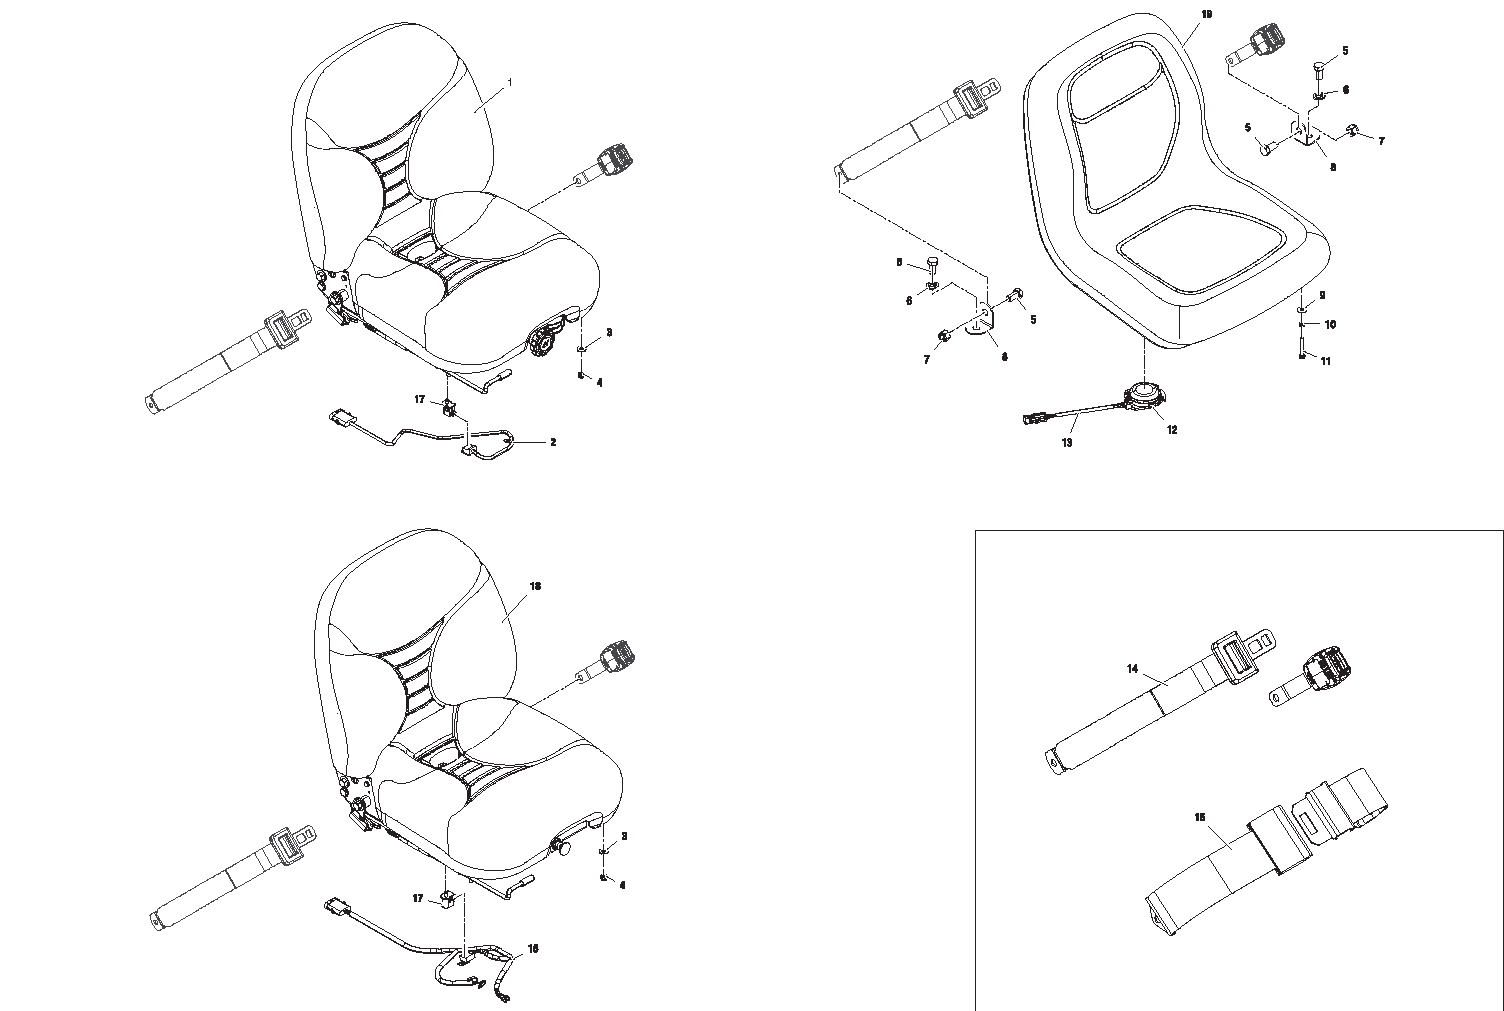 Diagram 7-5A Seat - Seatbelt Assemblies - Seat Switches